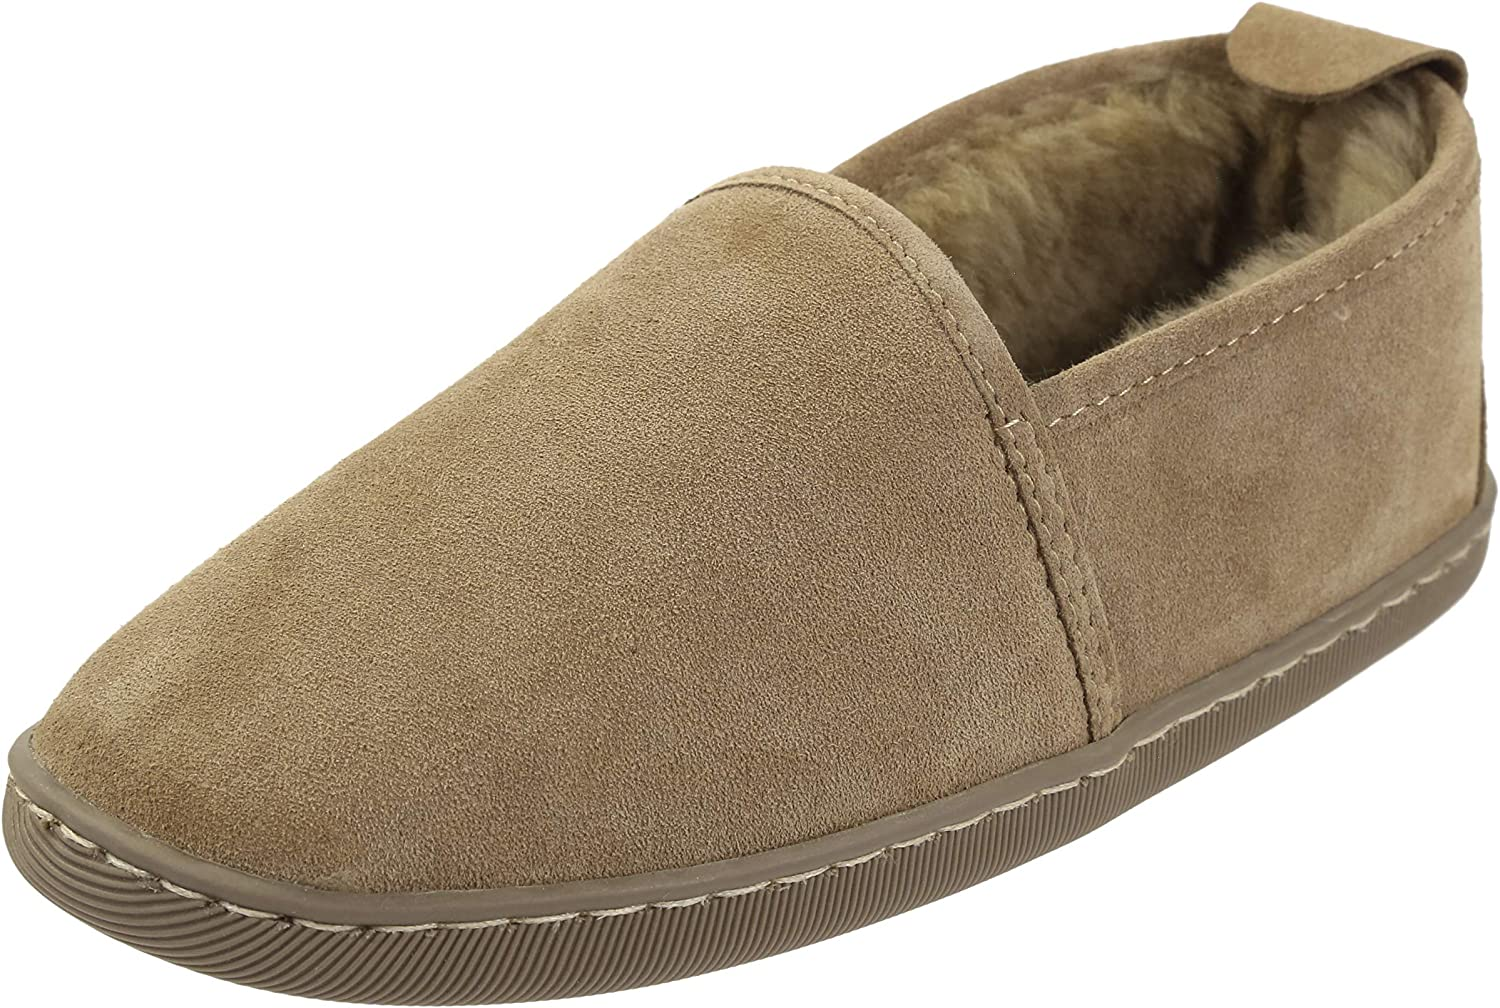 Vogar Womens Leather Slippers VG-31 Sheep Wool Lined